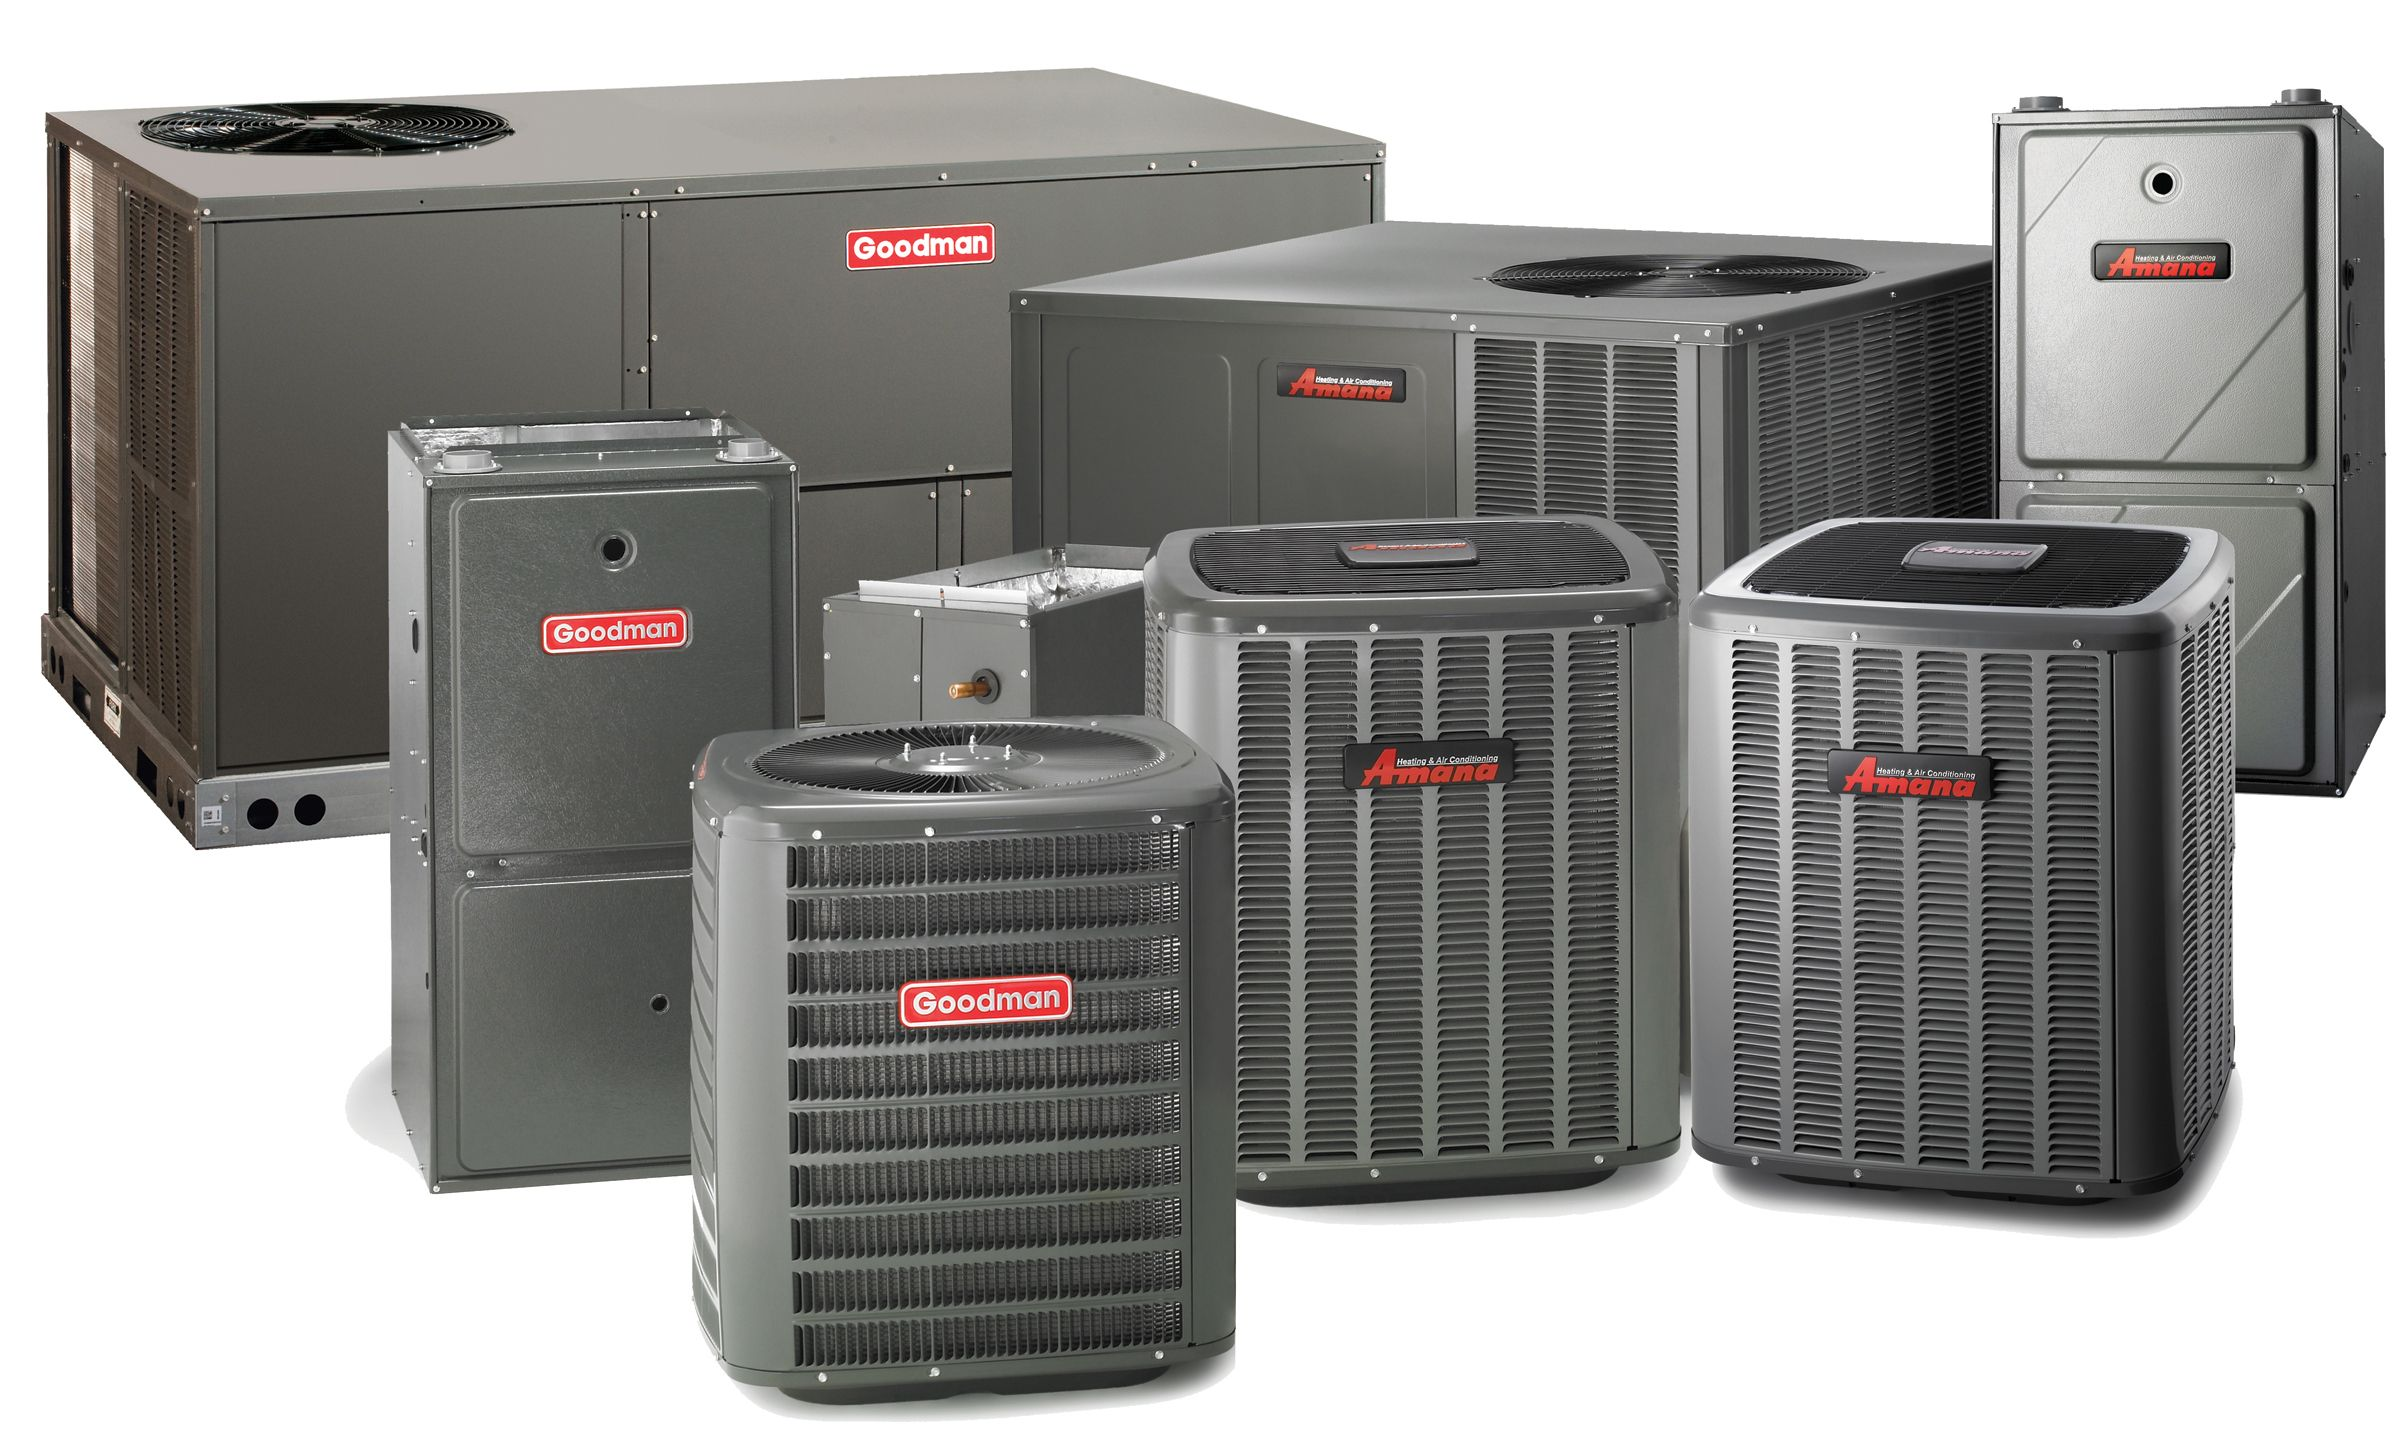 We Service And Repair All Major Household Appliance And